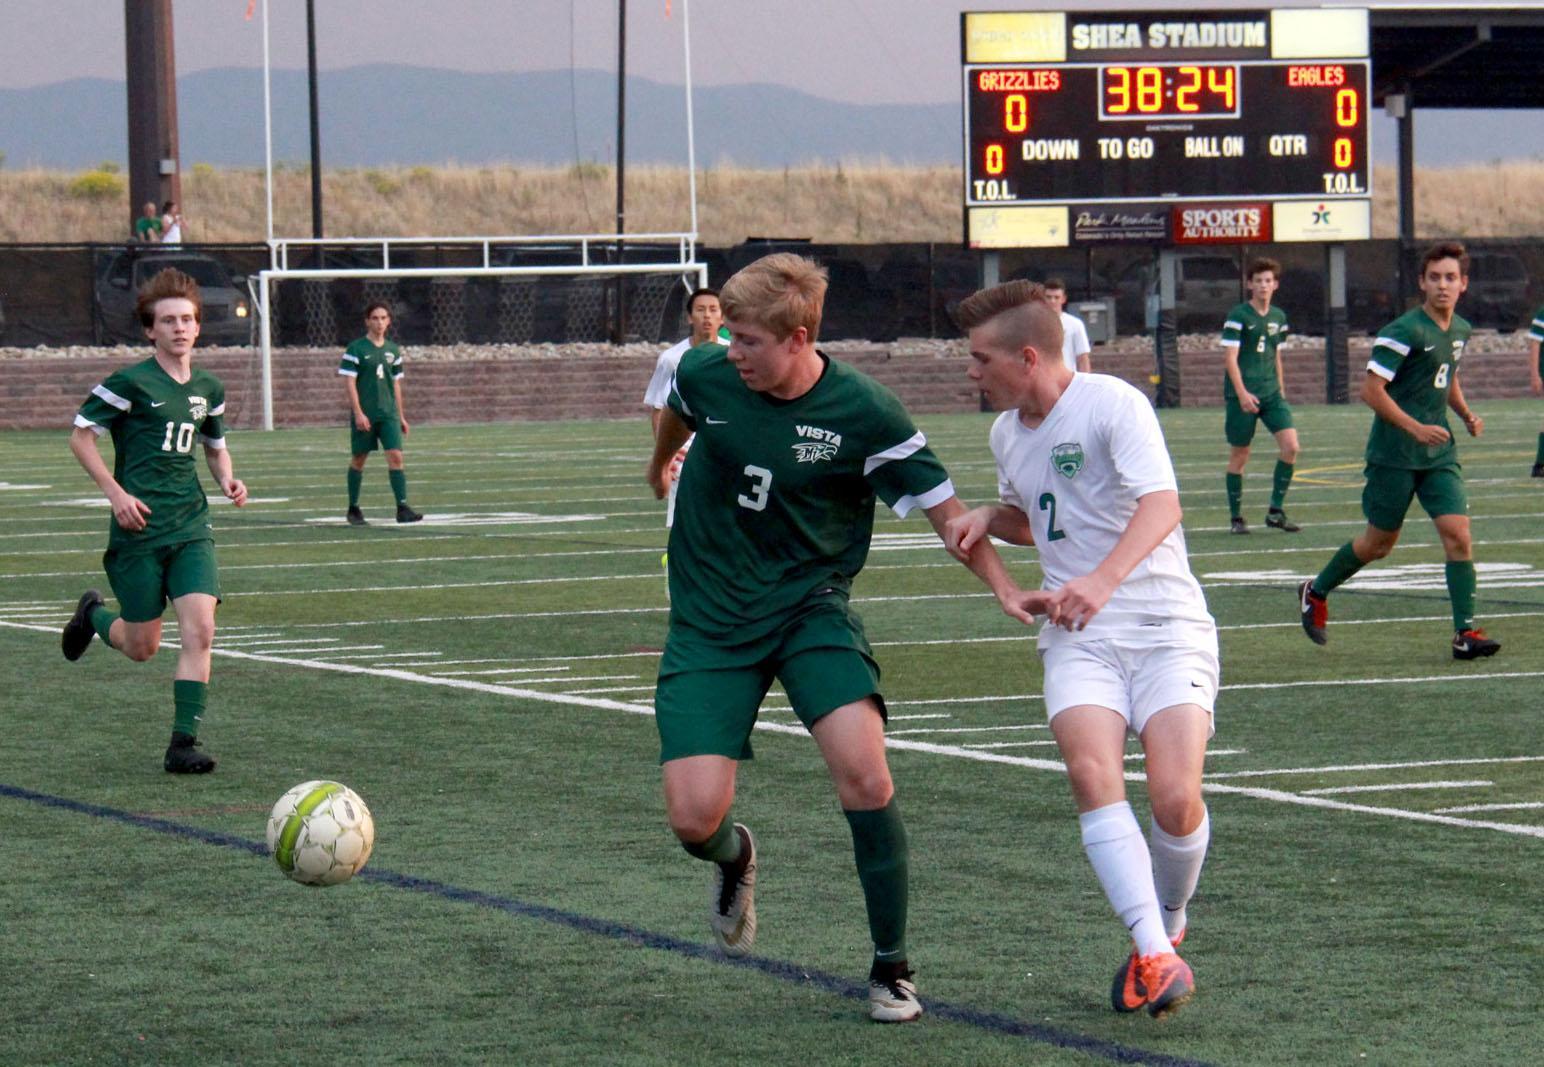 PHOTO GALLERY: Boys Varsity Soccer vs ThunderRidge